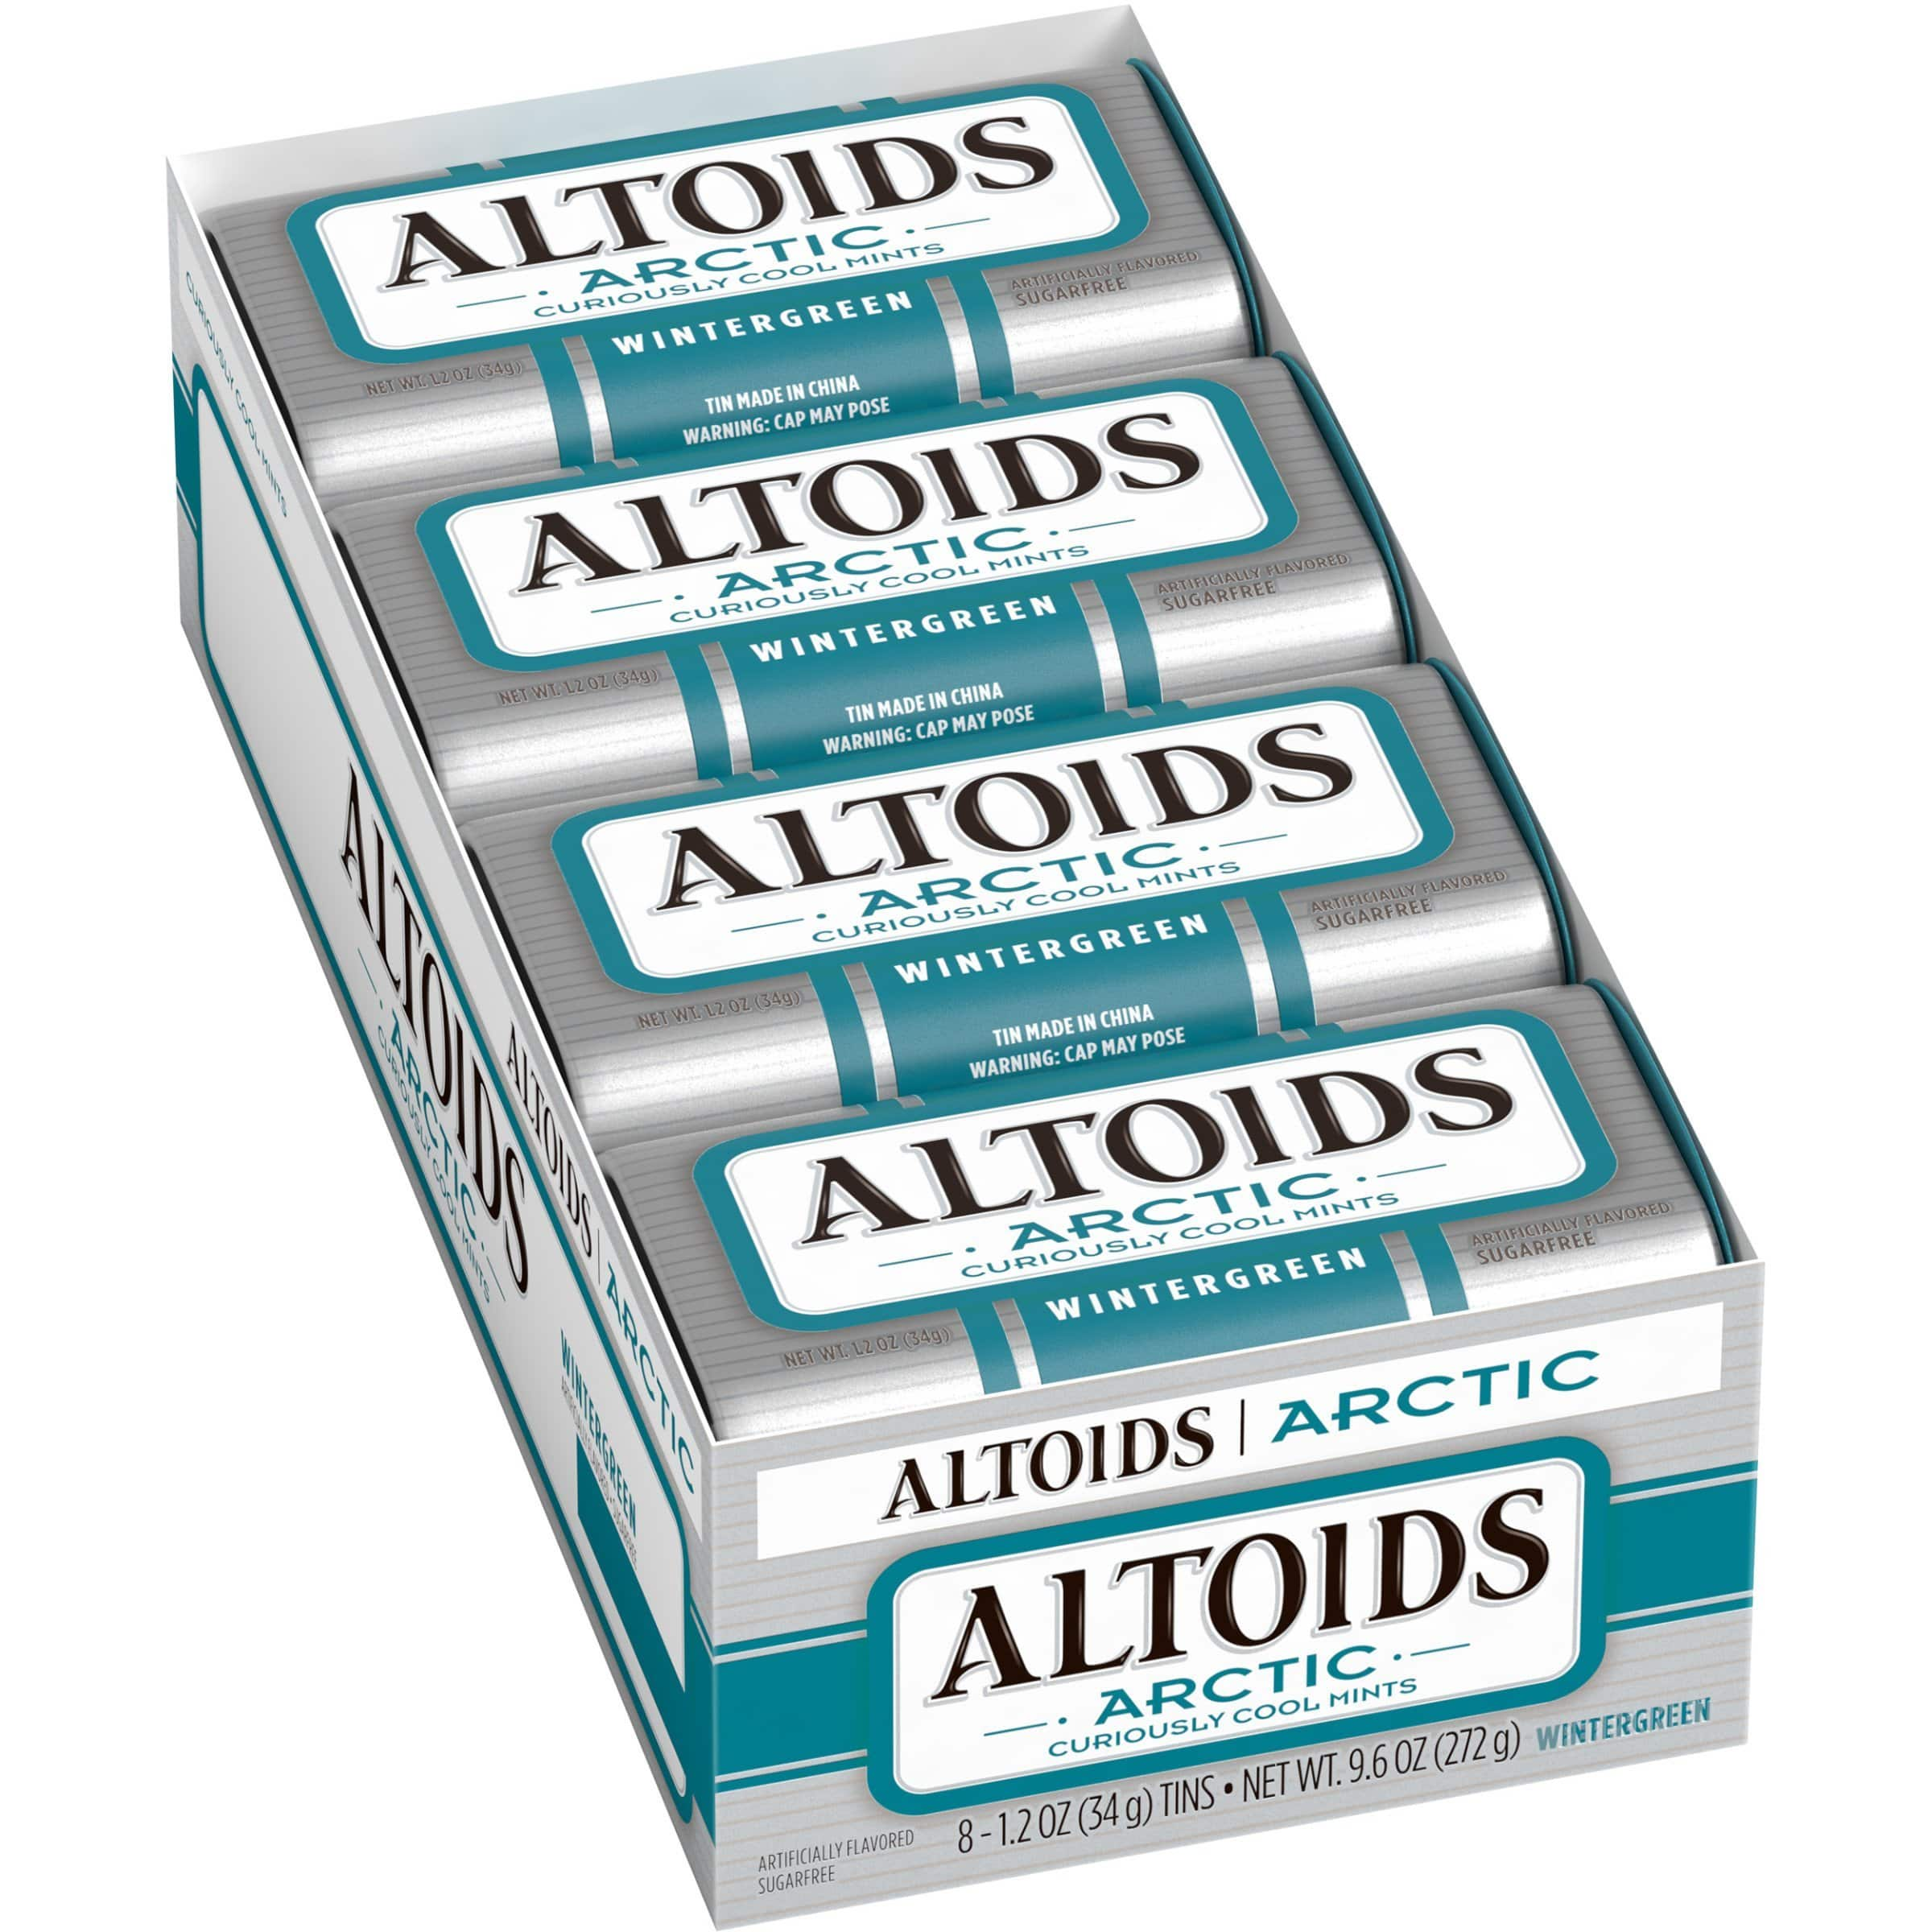 Amazon S&S: Altoids Arctic Peppermint Mints, 1.2 Ounce (8 packs) $7.36 or as low as $6.59 + Free Shipping